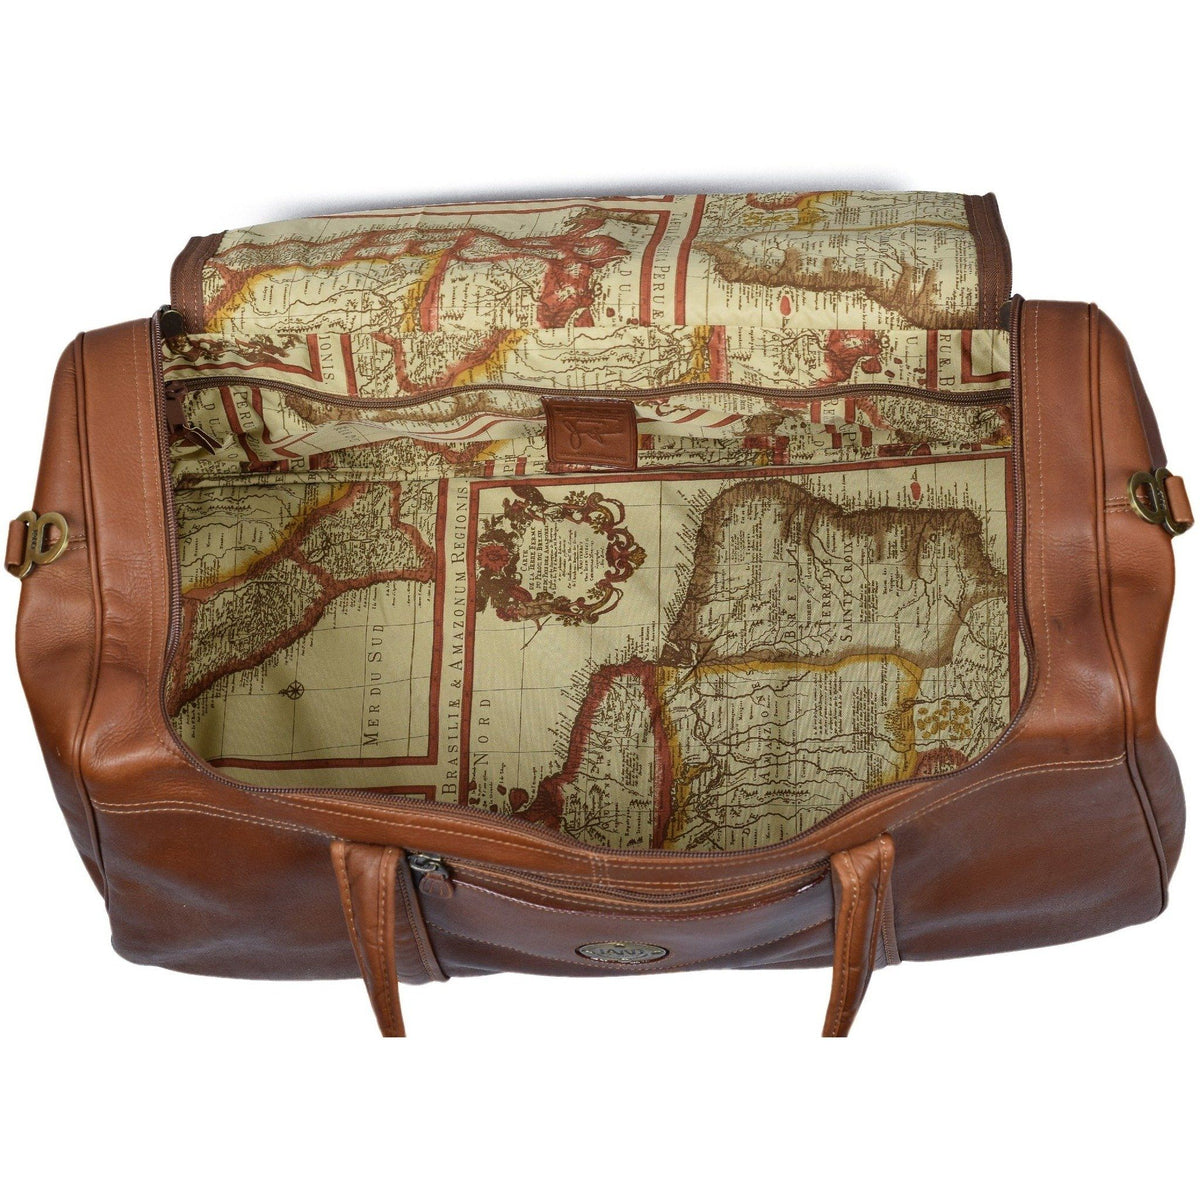 Santa Fe San Fran Duffel Bag, Duffel Bag | LAND Leather